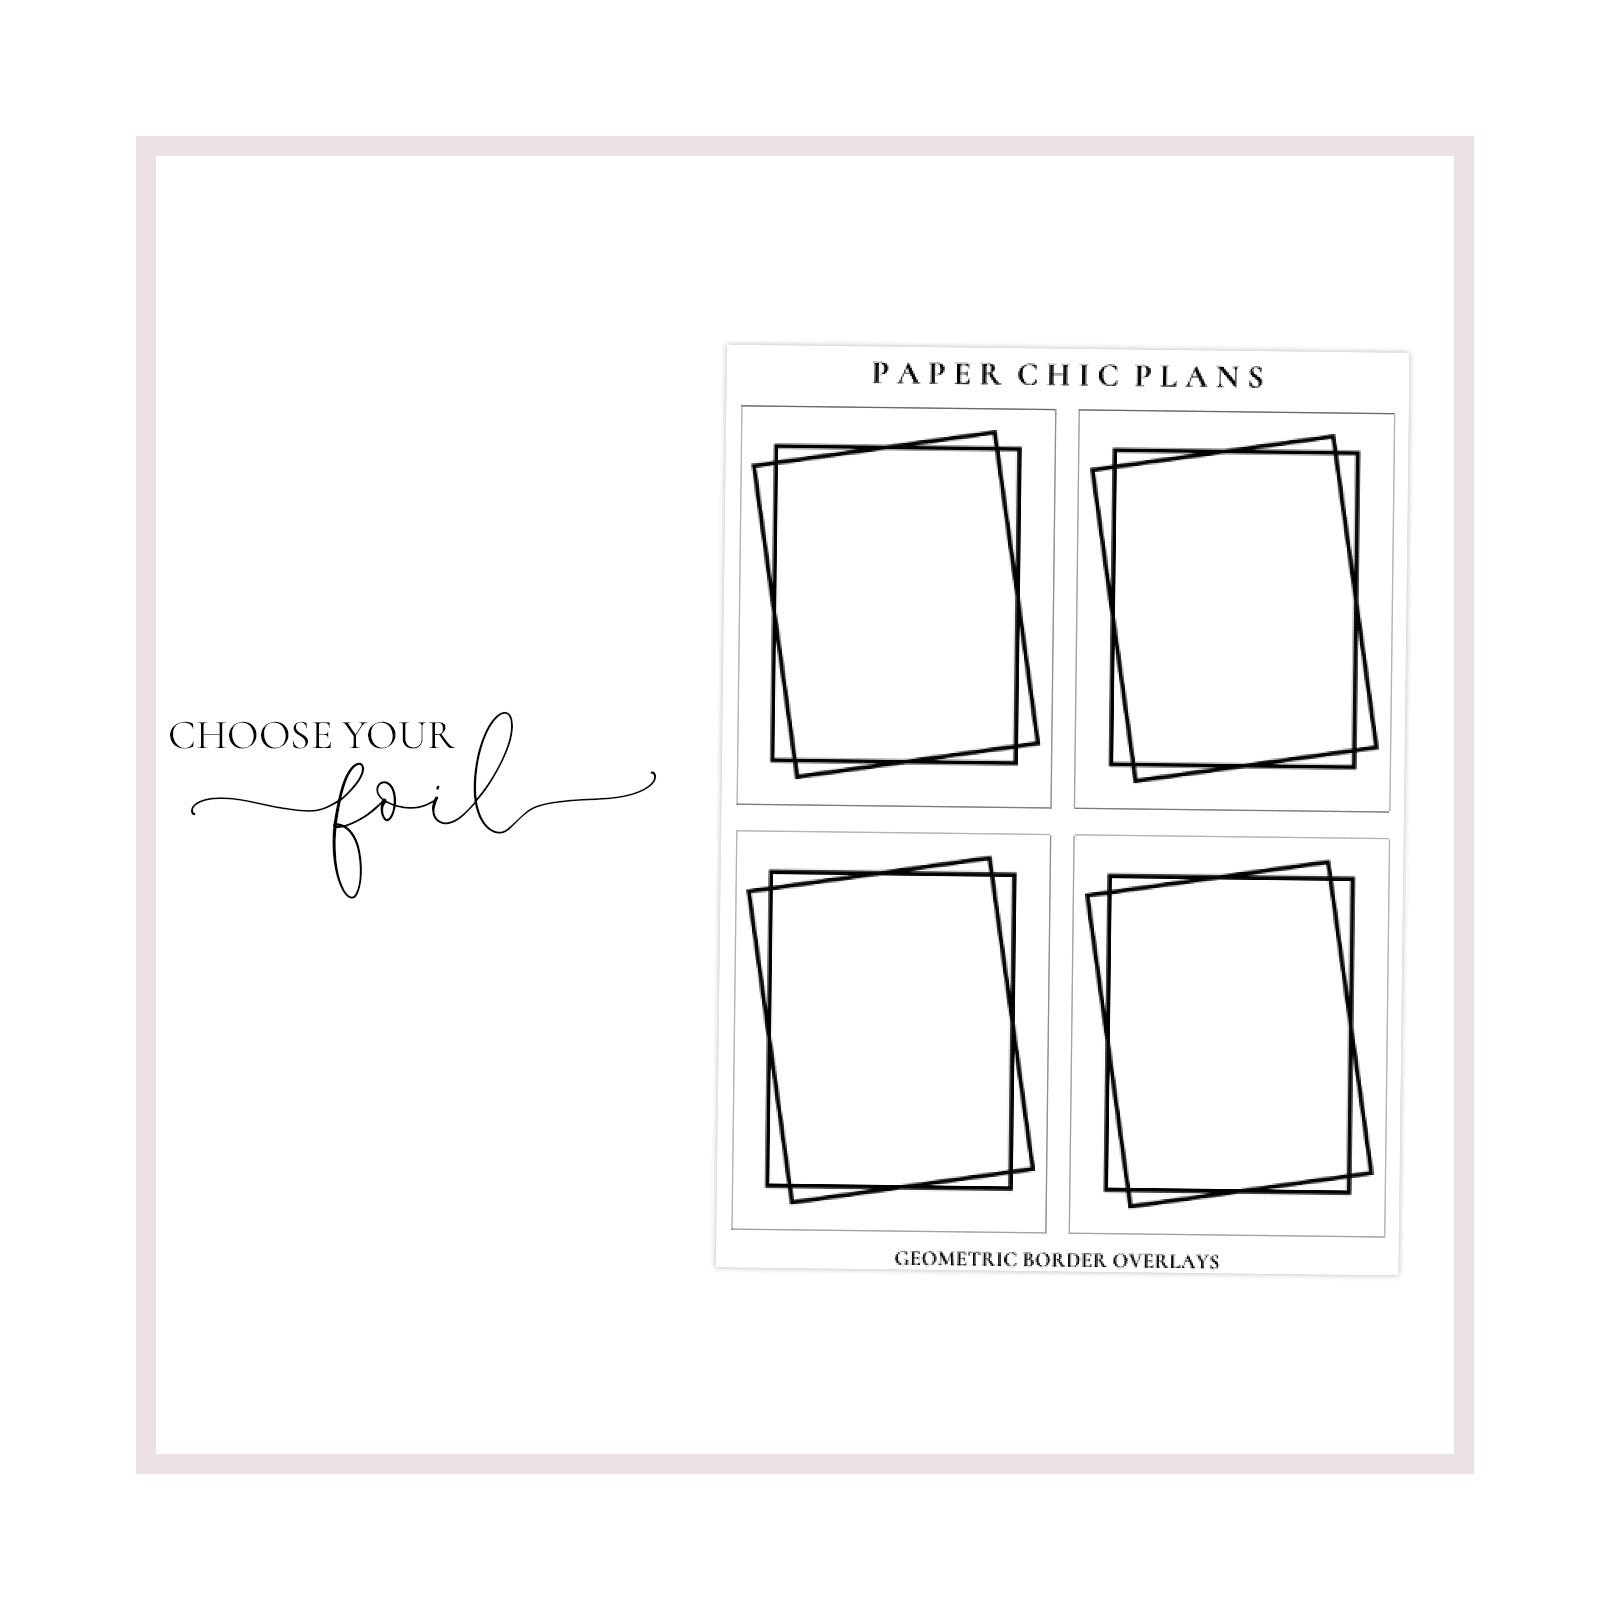 Geometric Full Box Overlays // Foiled - Paper Chic Plans